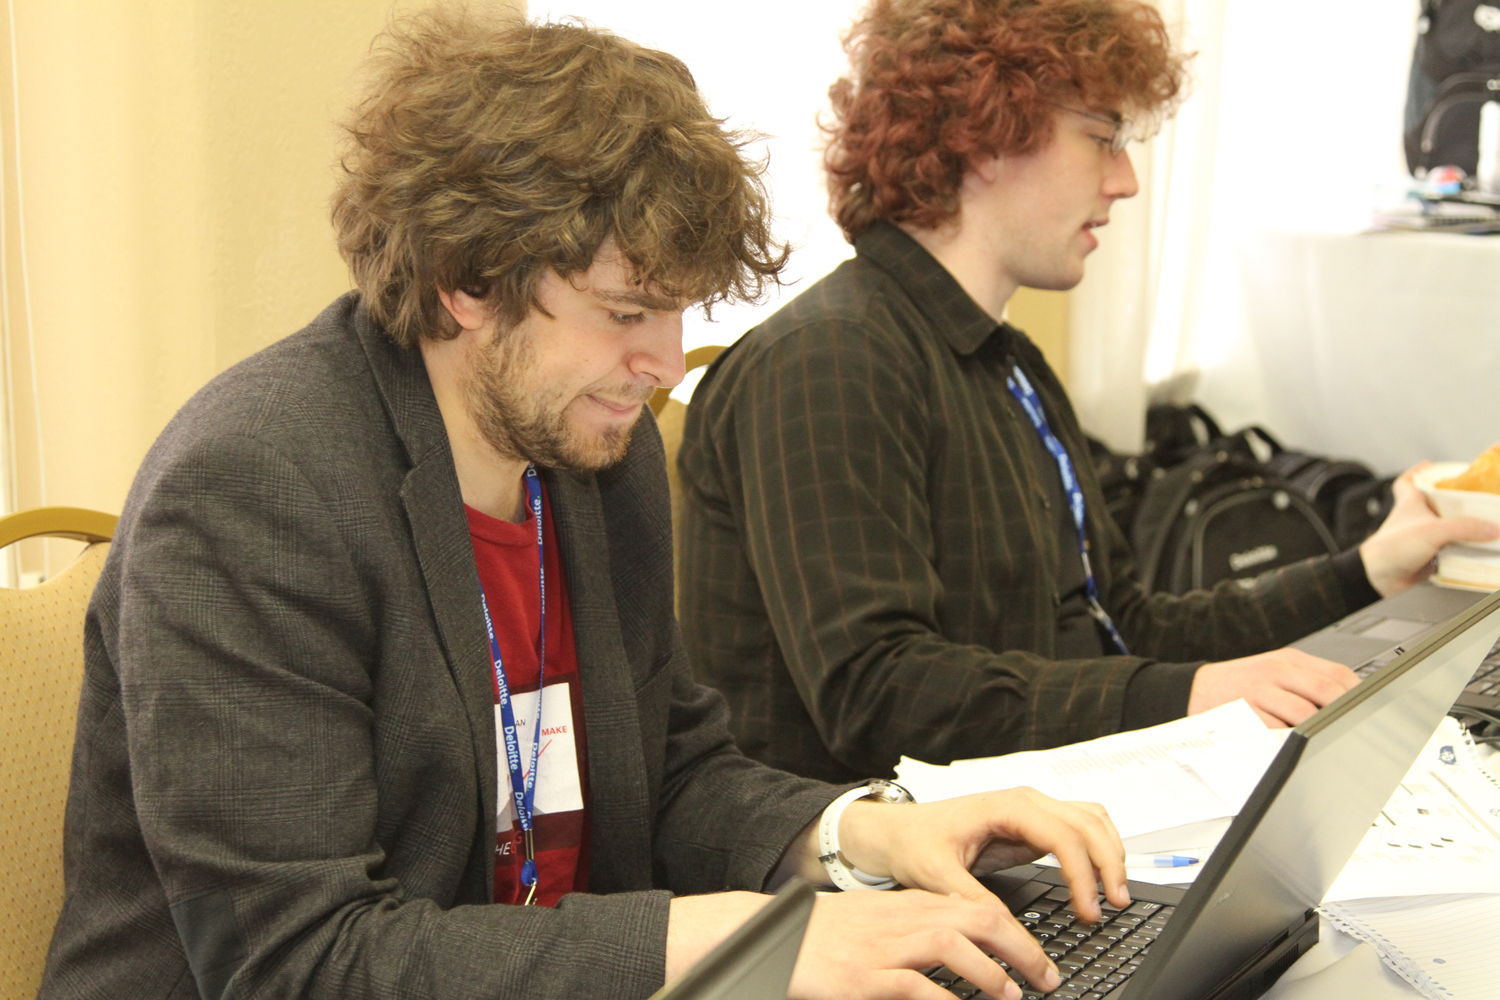 Ian Finder and Lars Zornes during the competition.